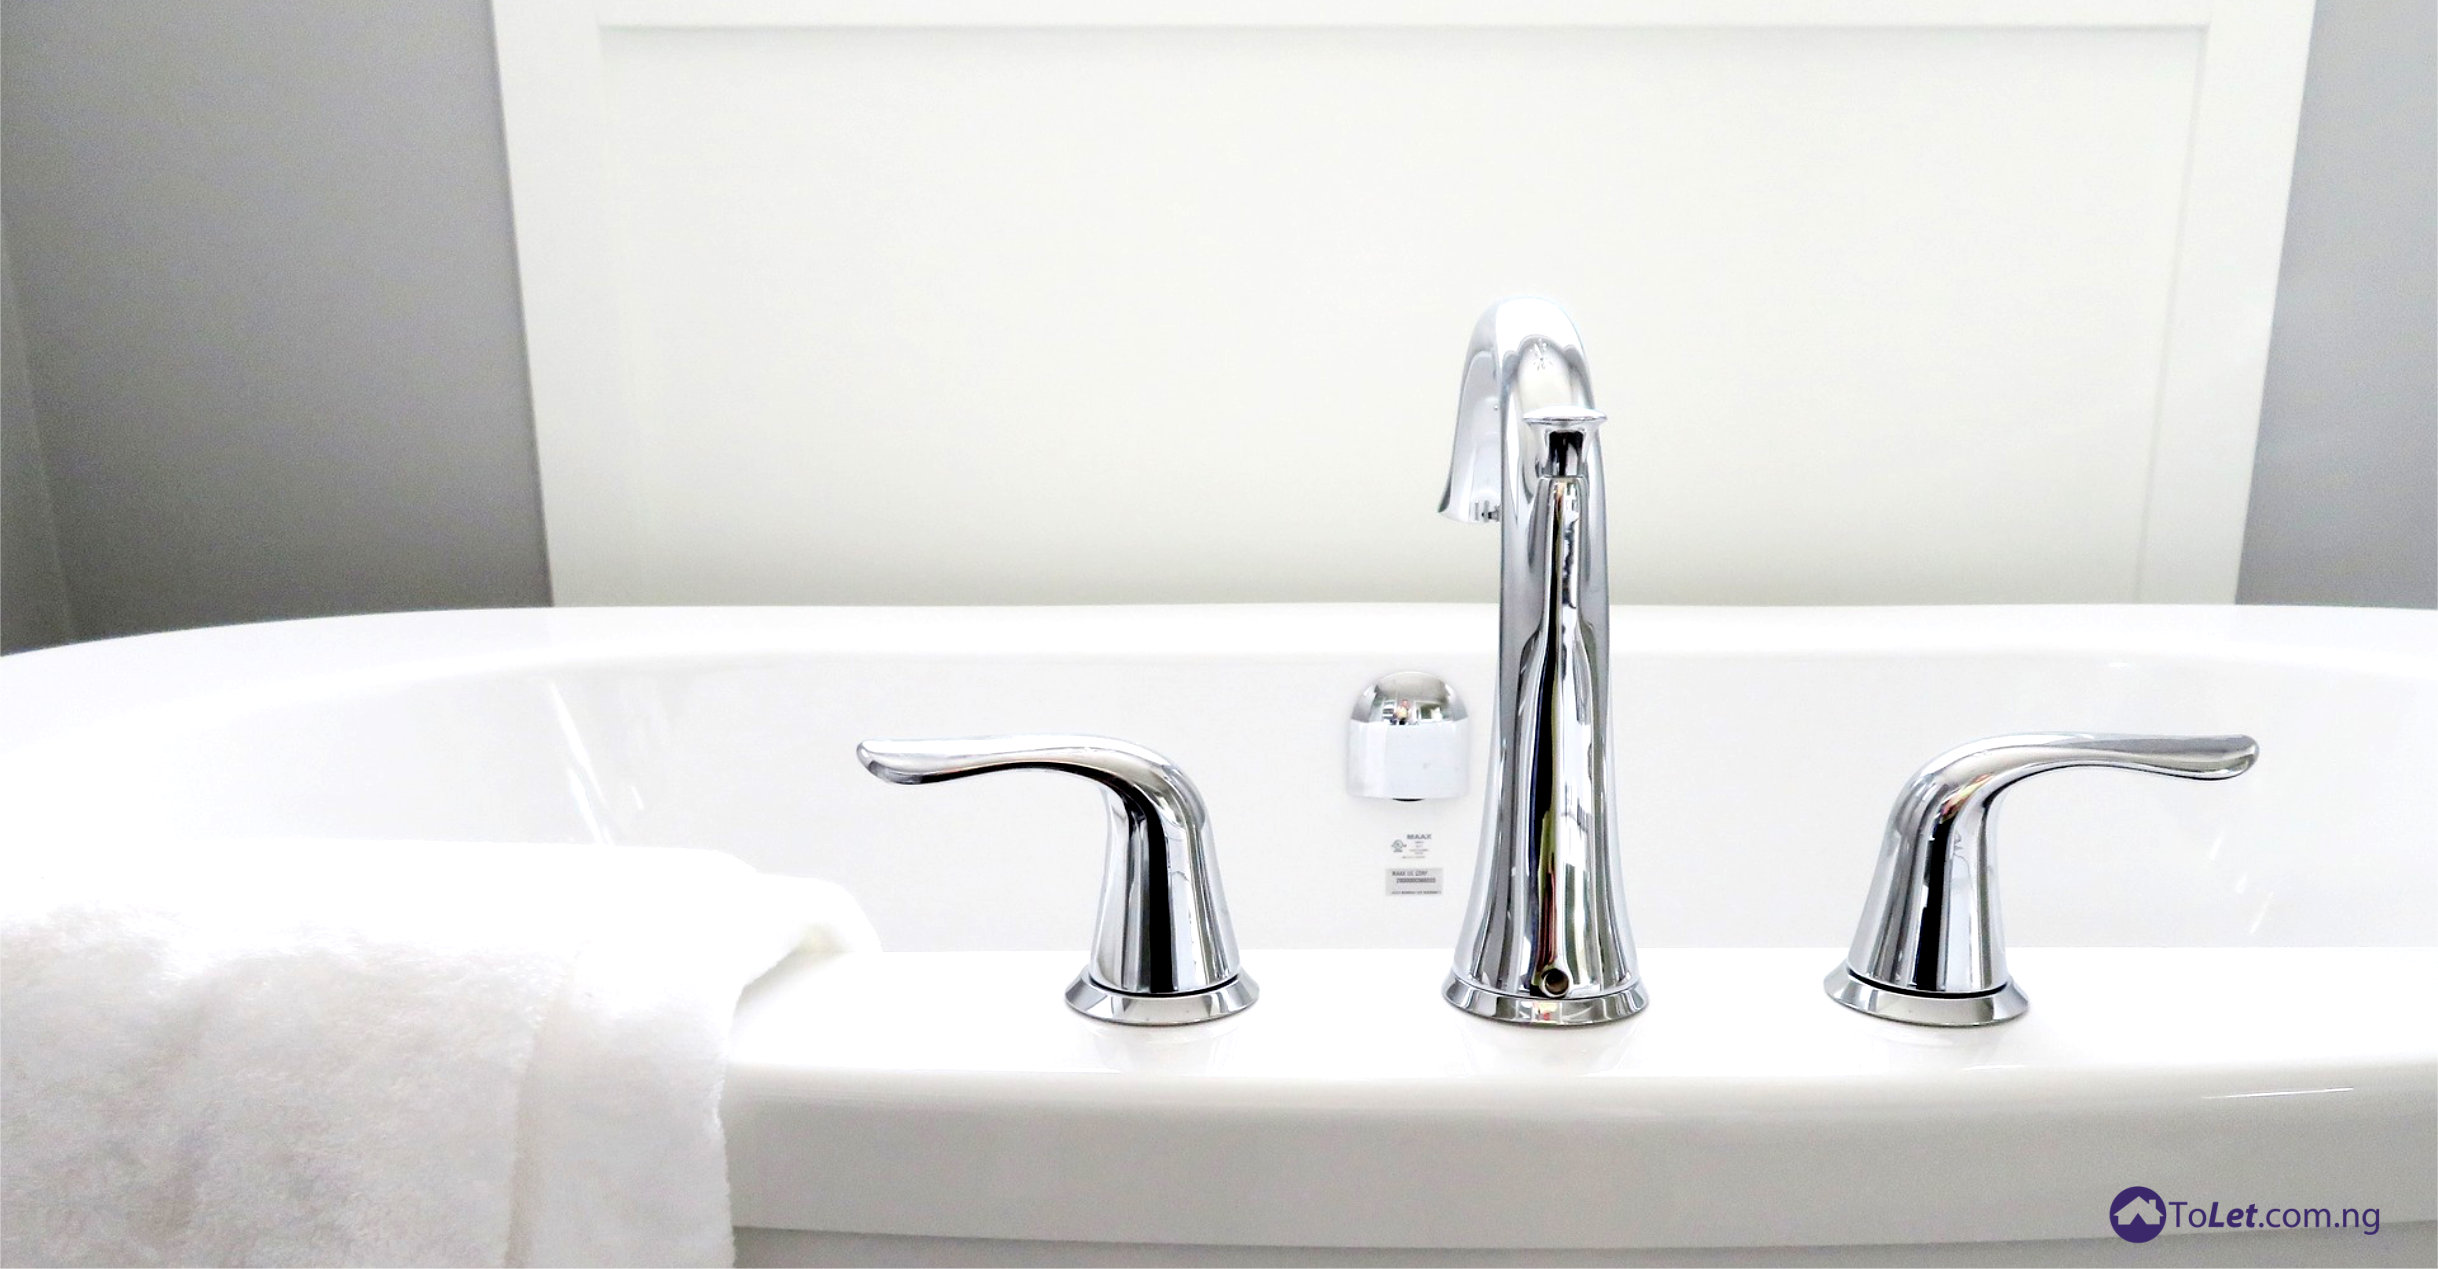 5 Steps To Choosing The Right Bathtub - PropertyPro Insider